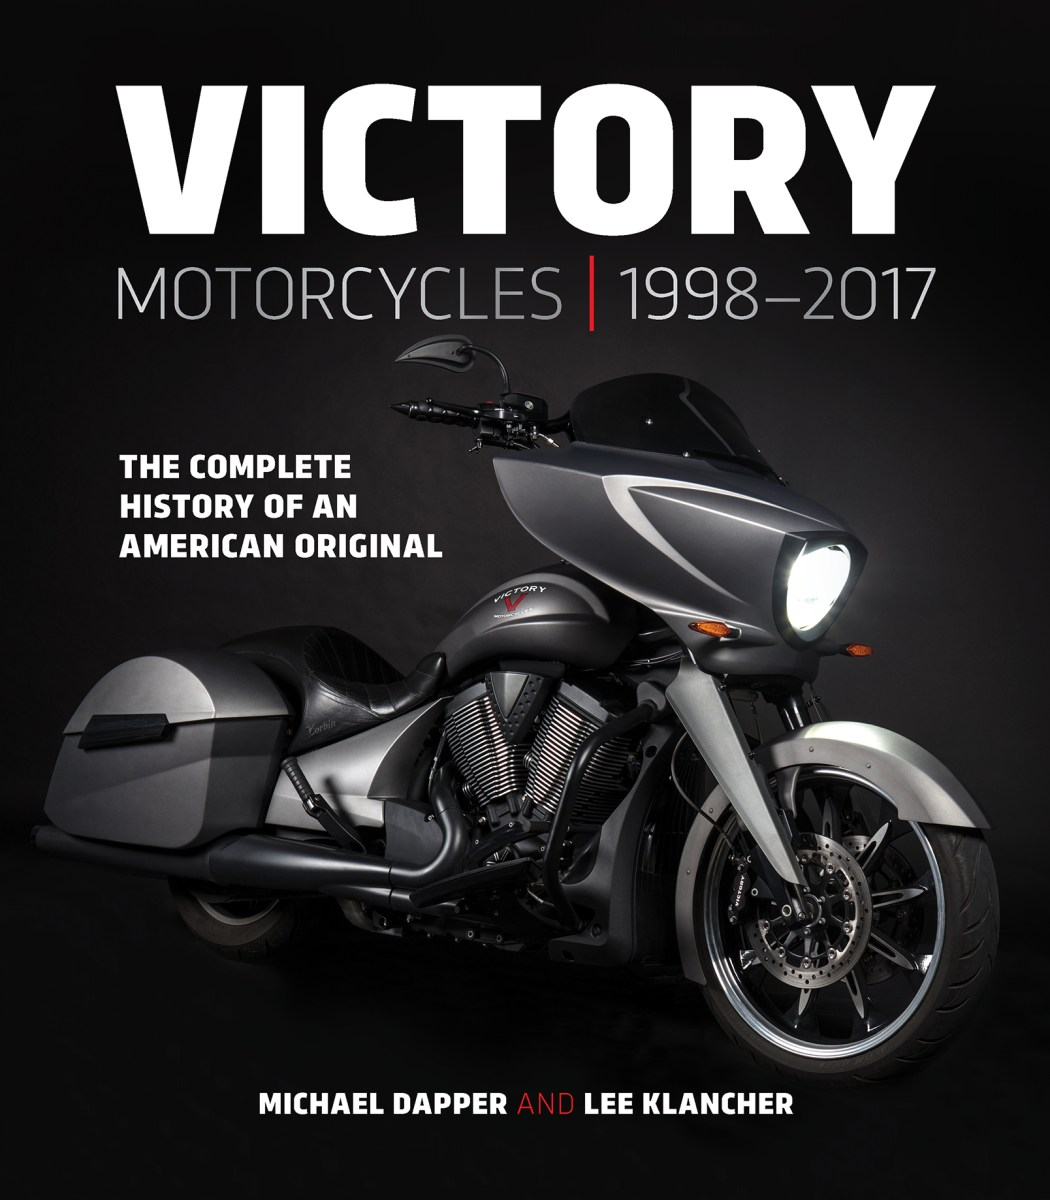 New Book, Victory Motorcycles 1998-2017, Chronicles the Rise and Fall of Victory Motorcycles - Available in April 2018